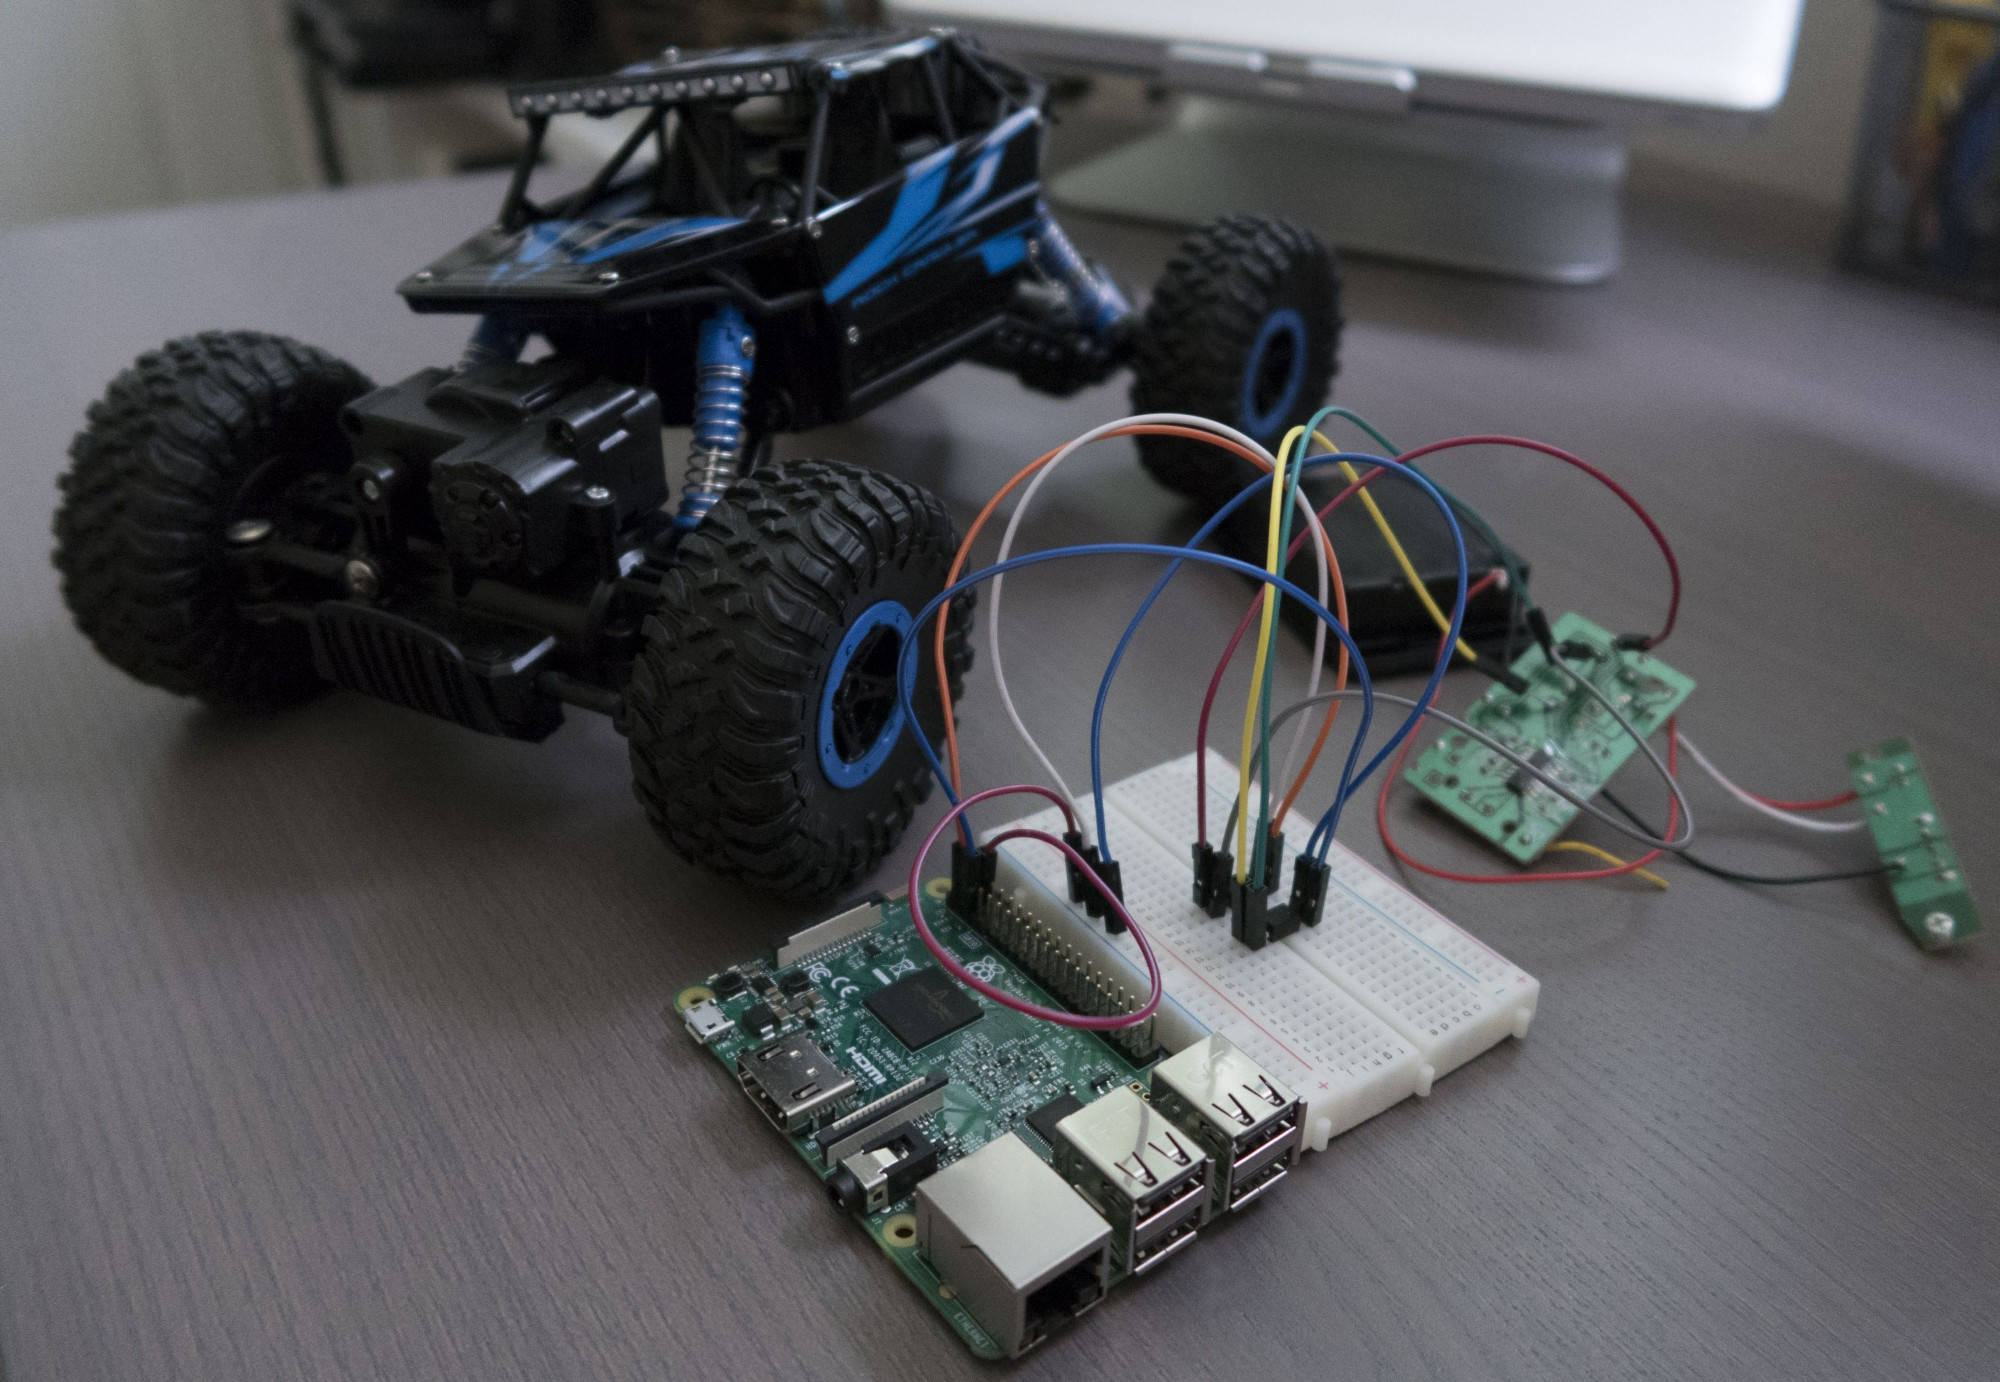 Building A Chatbot Controlled Car With Raspberry Pi And Remote Control Circuit Boardbuy Cheap Board